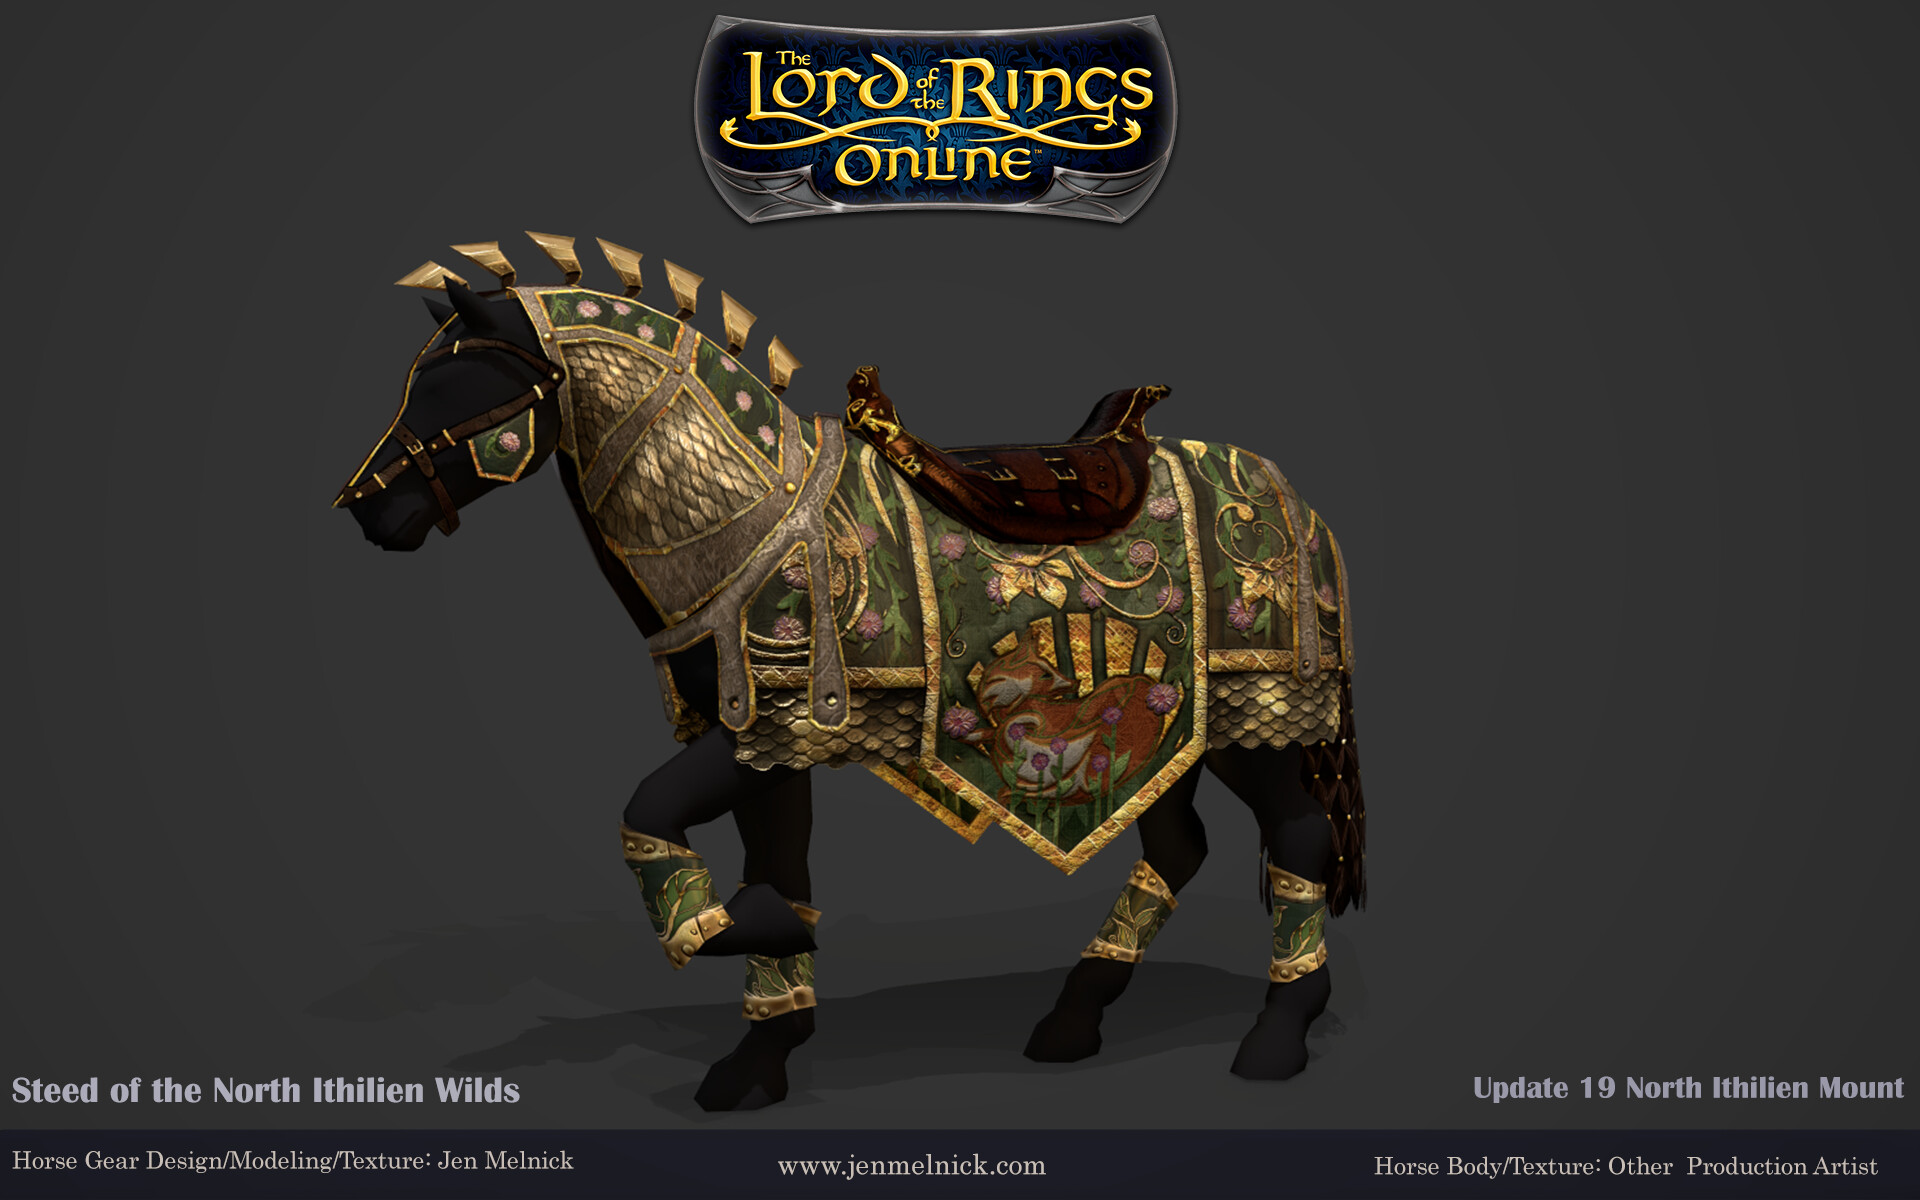 Update 19 North Ithilien Steed